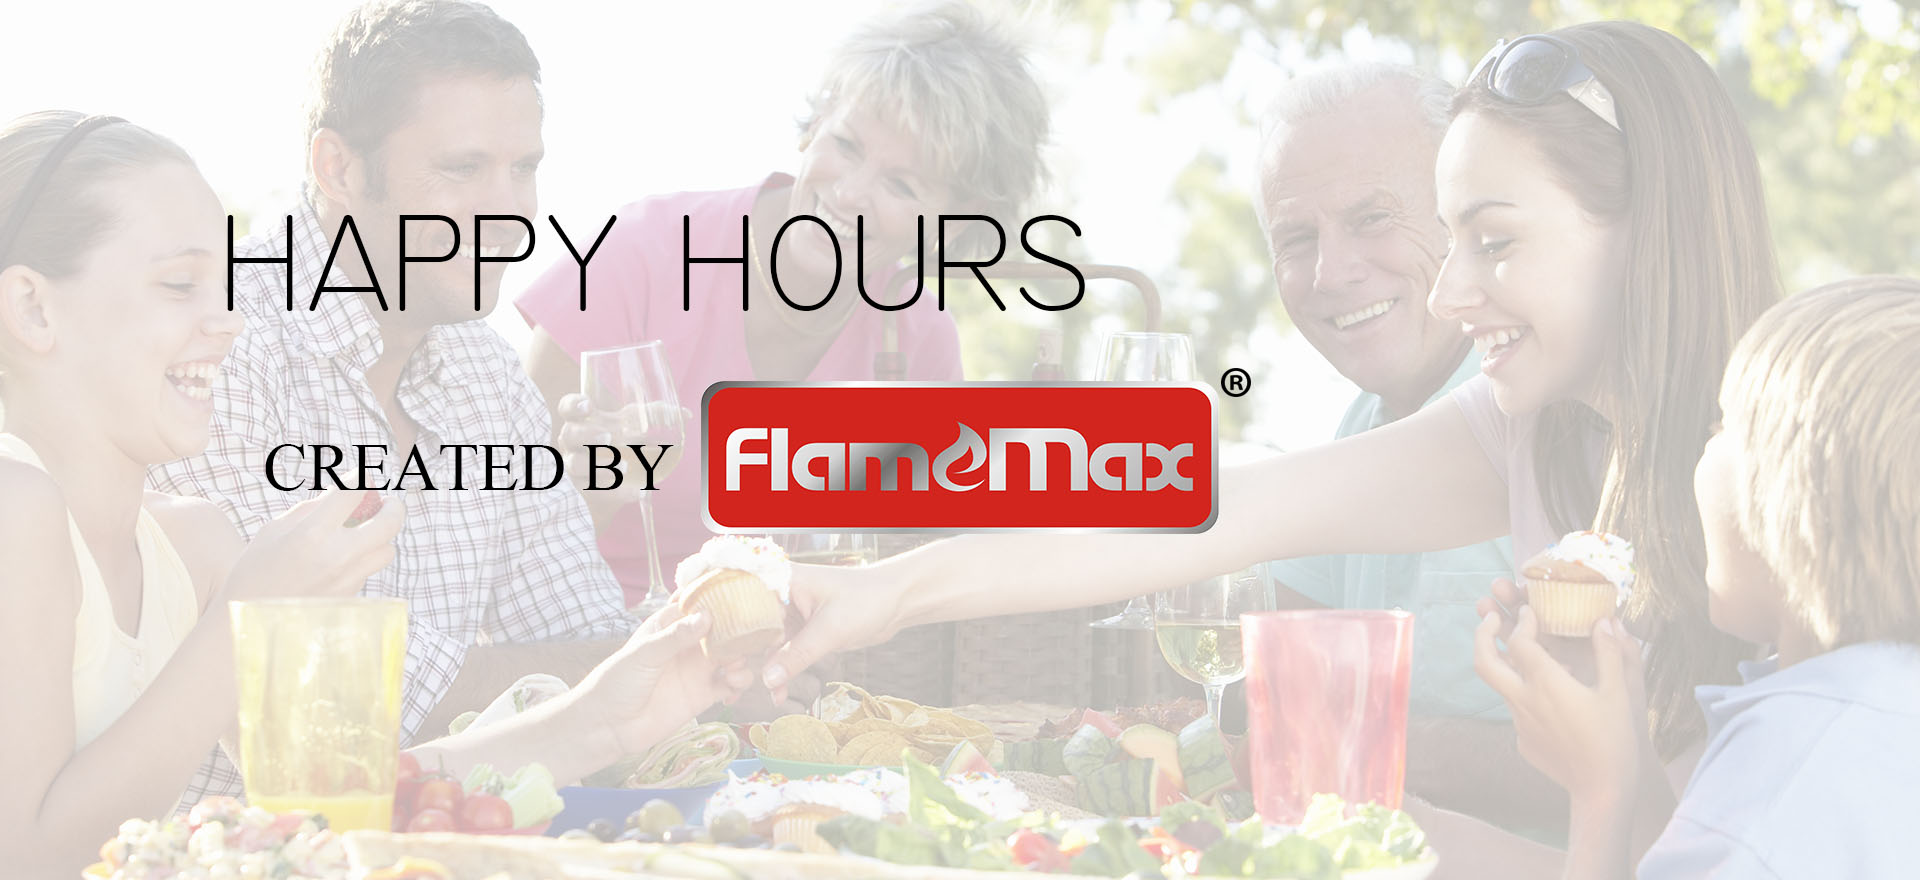 HAPPY HOURS CREATED BY FLAMEMAX